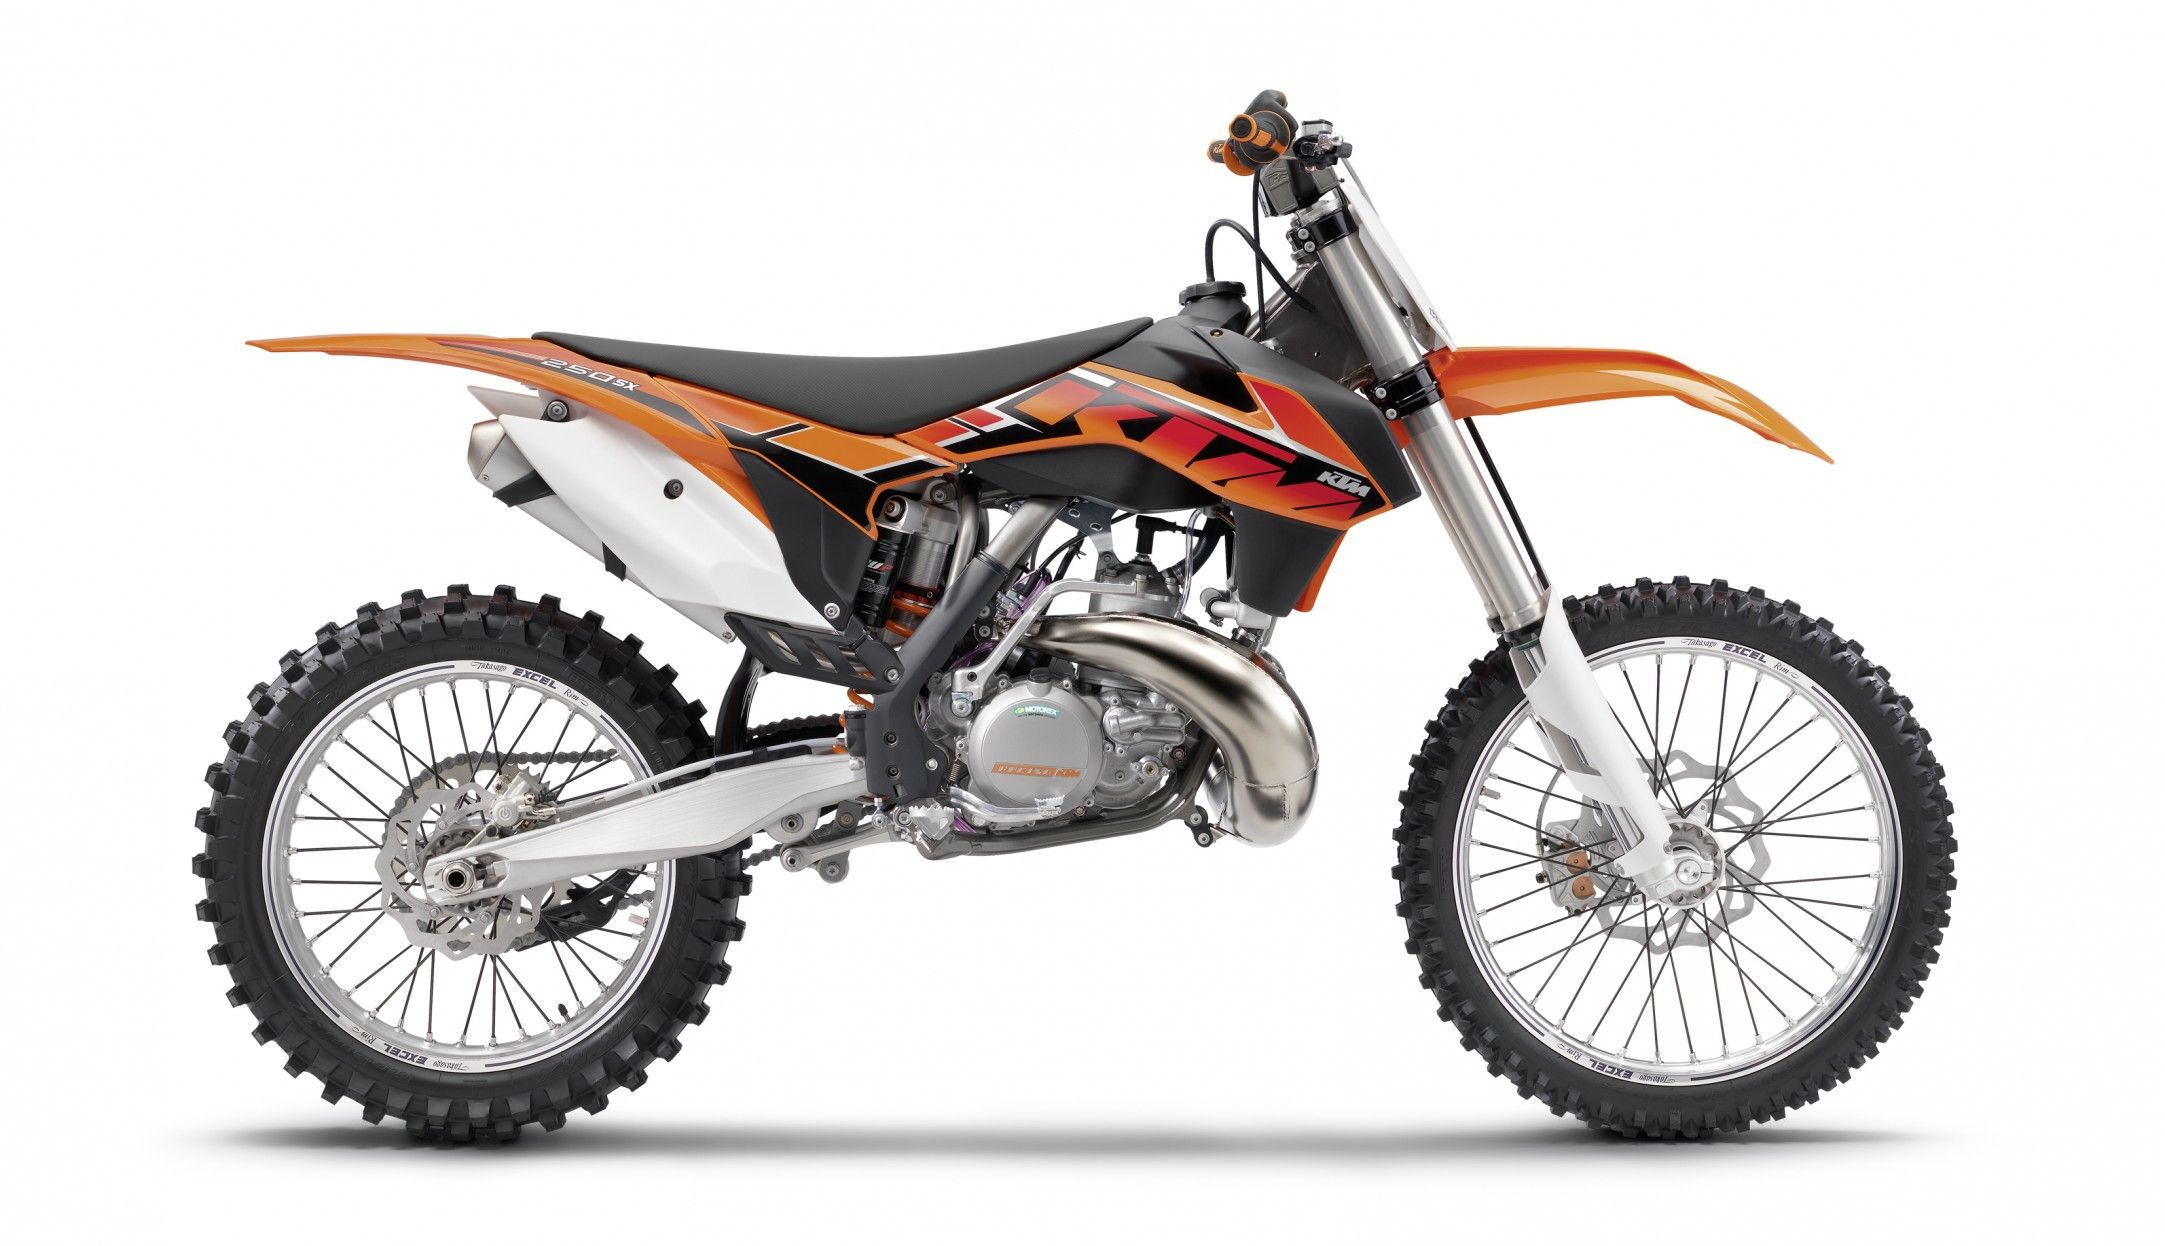 Pin By Diego Alonso On Off Road Vehicles Ktm Motocross Ktm Ktm Dirt Bikes